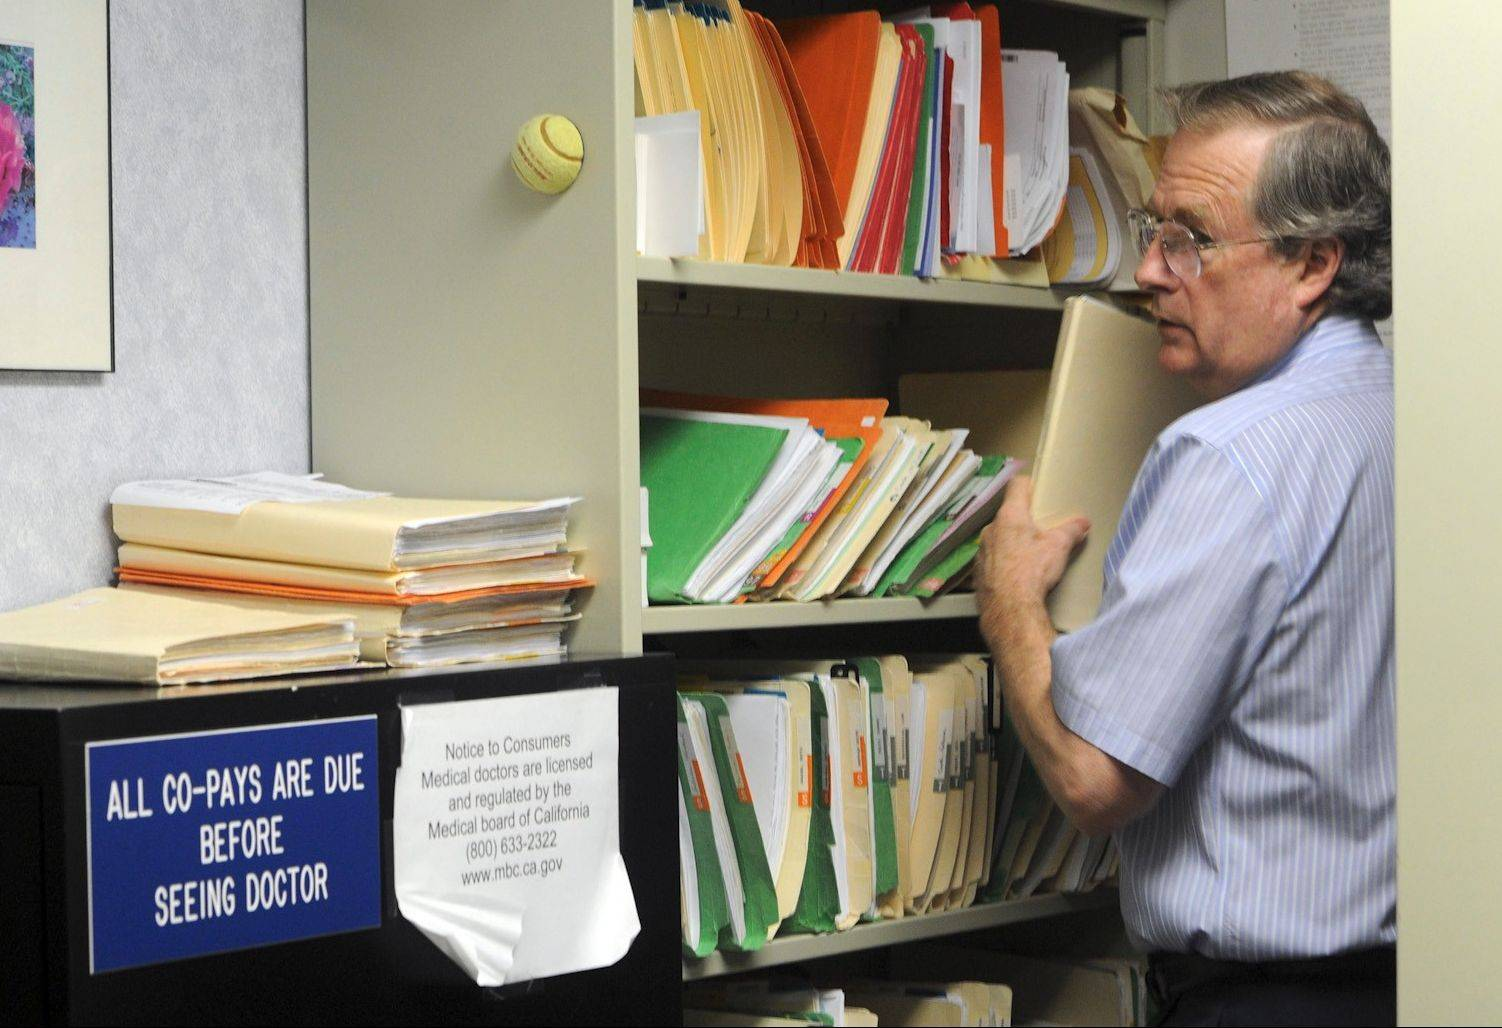 Dr. Ted Hole files papers, answers calls, makes appointments and checks in his patients among other duties.